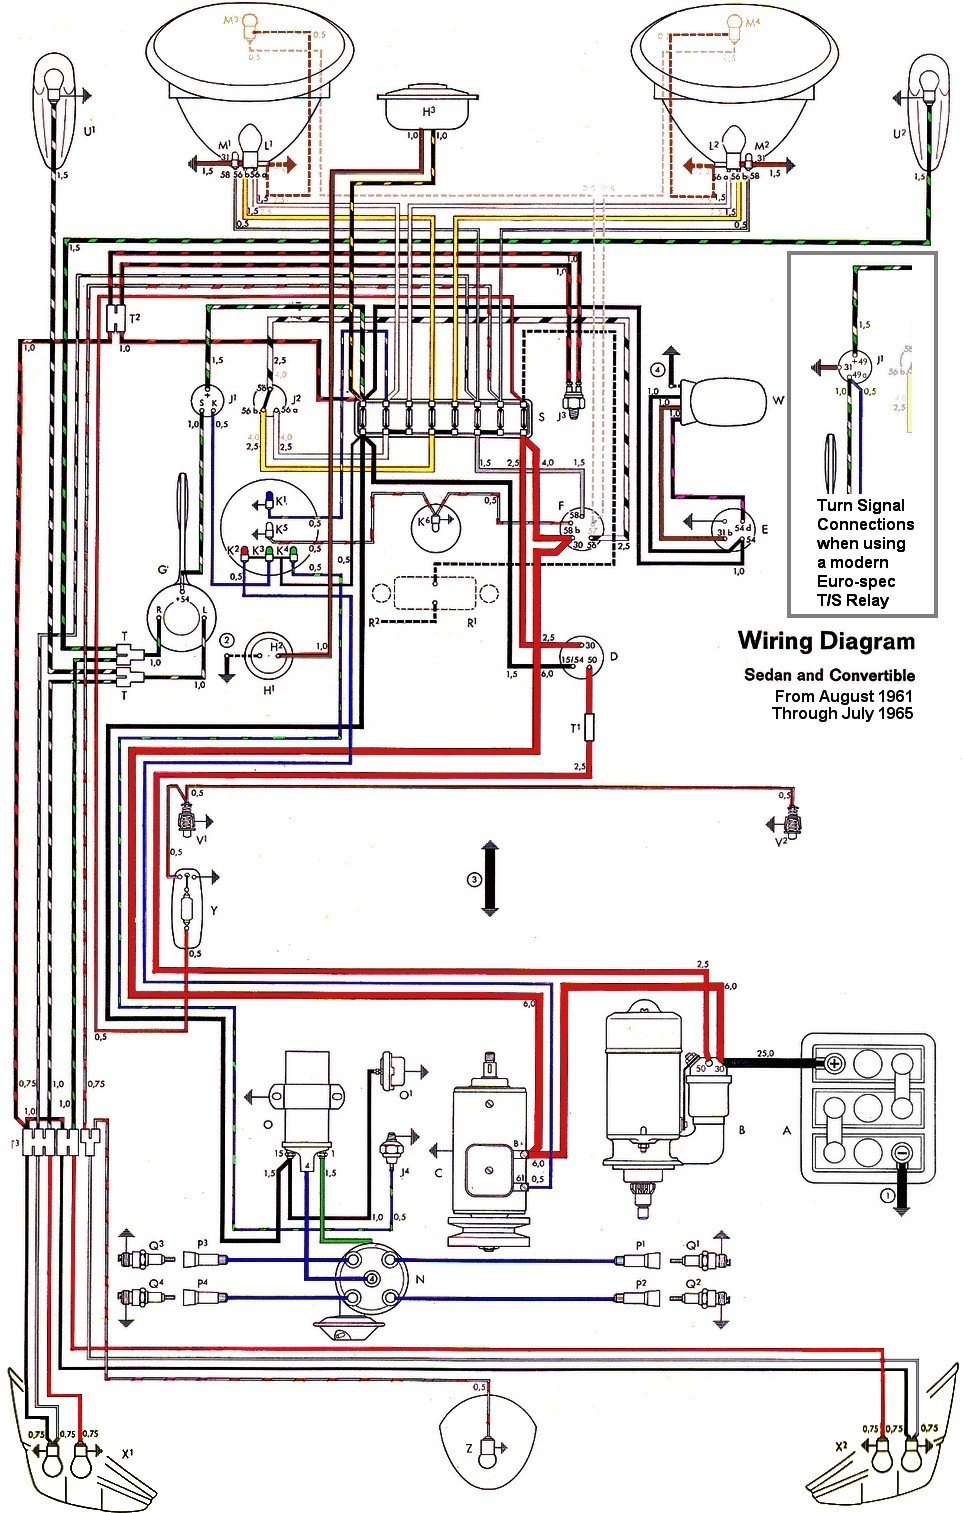 1973 Vw Wiring Diagram Data 73 Corvette Thesamba Com Type 1 Diagrams Baja